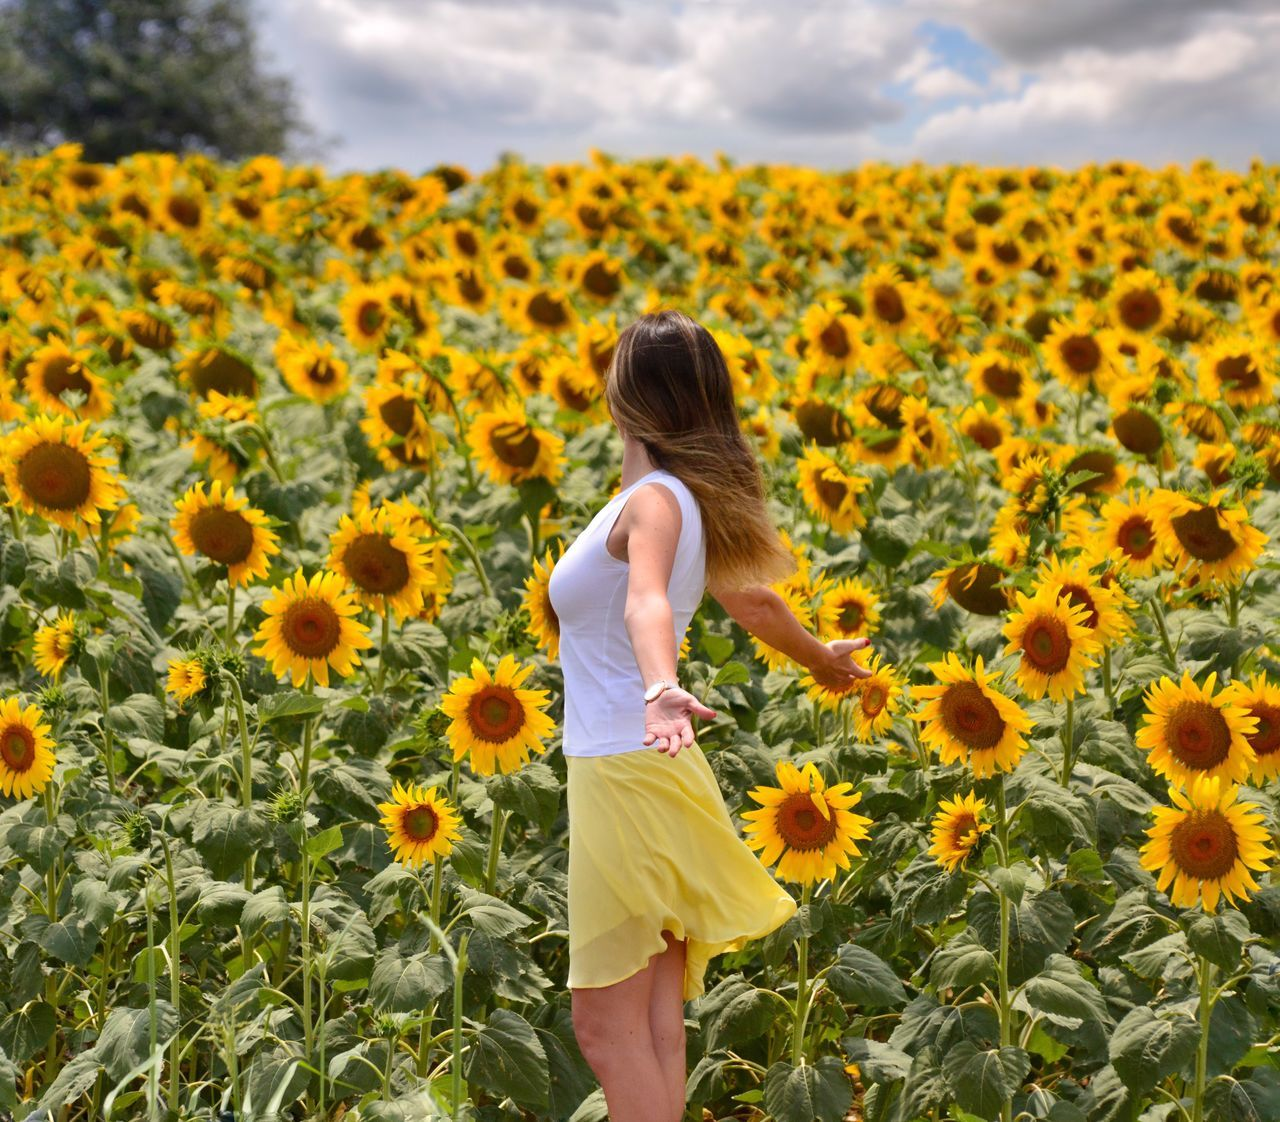 43 Golden Moments Turkey Blooming Blossom Flower Flowers Summer Views Adventure Travel Summertime Summer Self Portrait Sunflower Landscape Selfportrait Tree